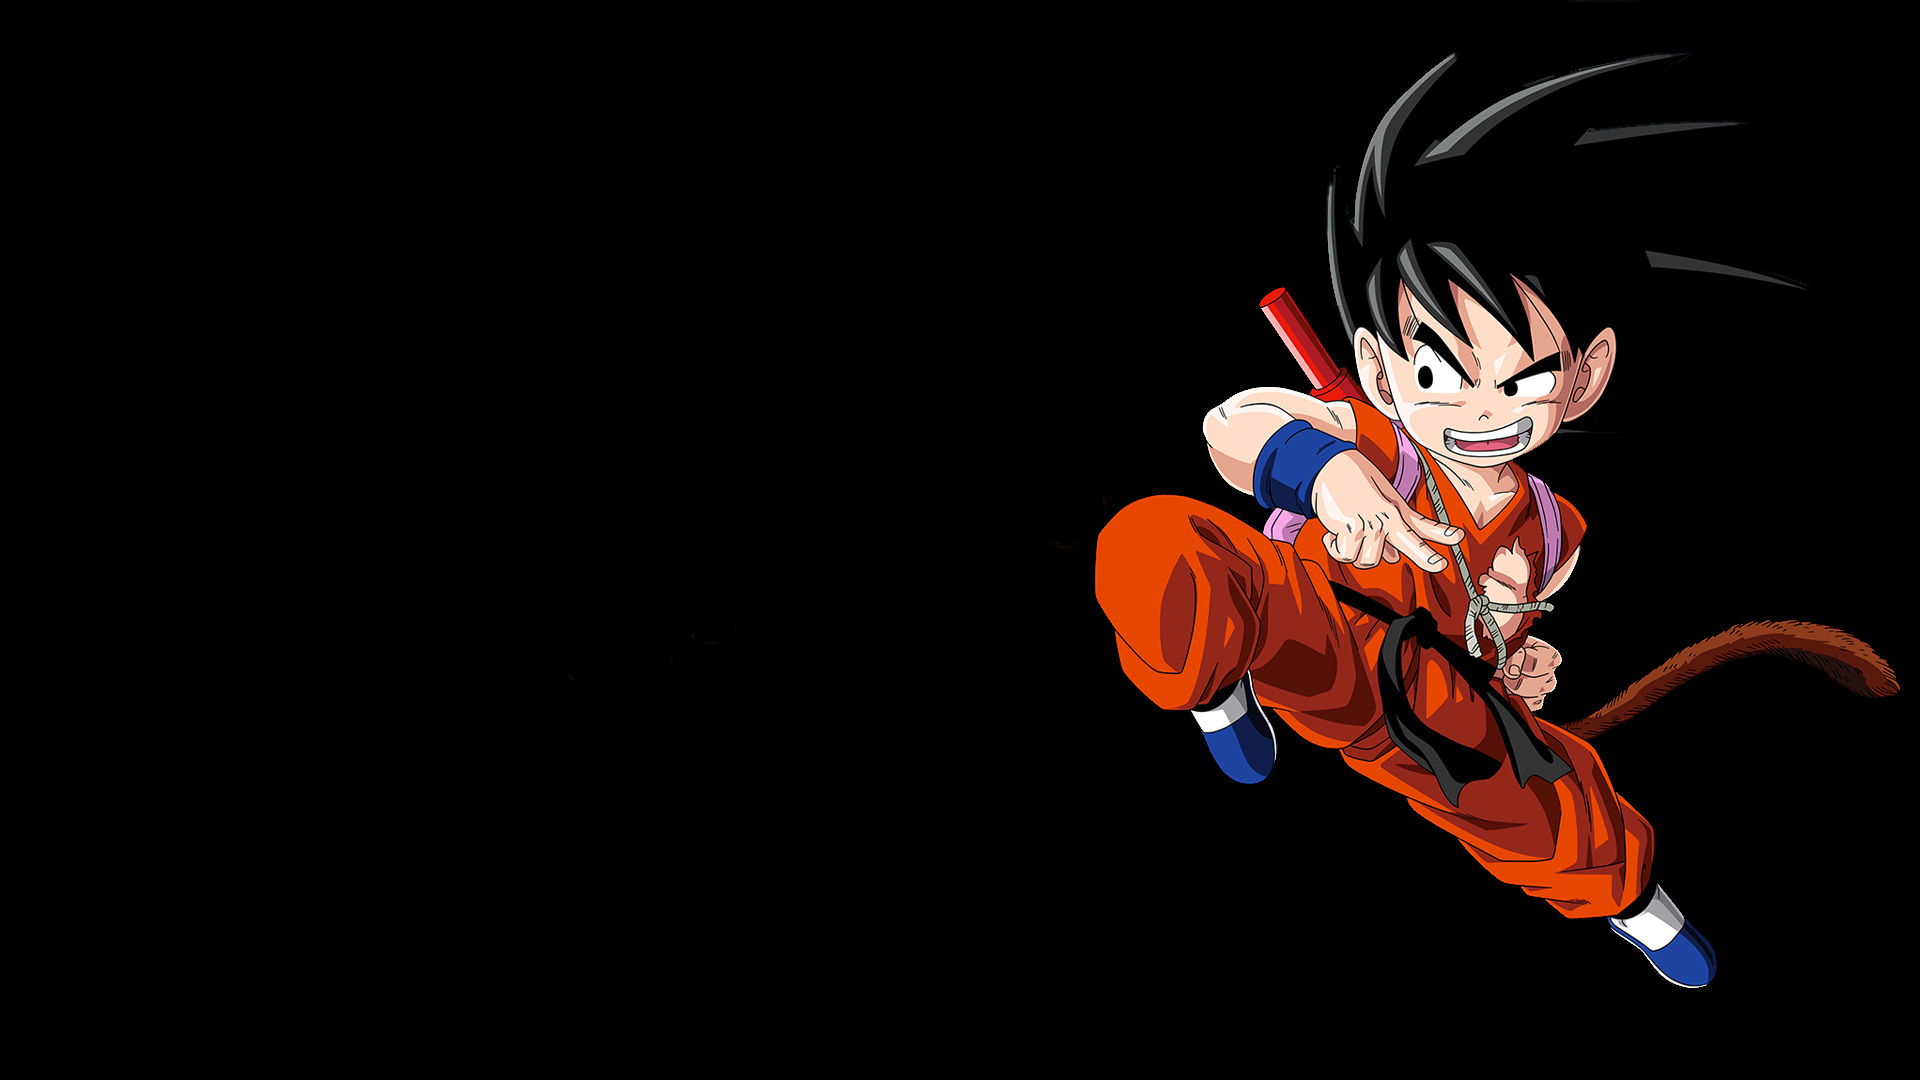 and resolution of wallpaper and prefer the wallpapers of HD quality 1920x1080